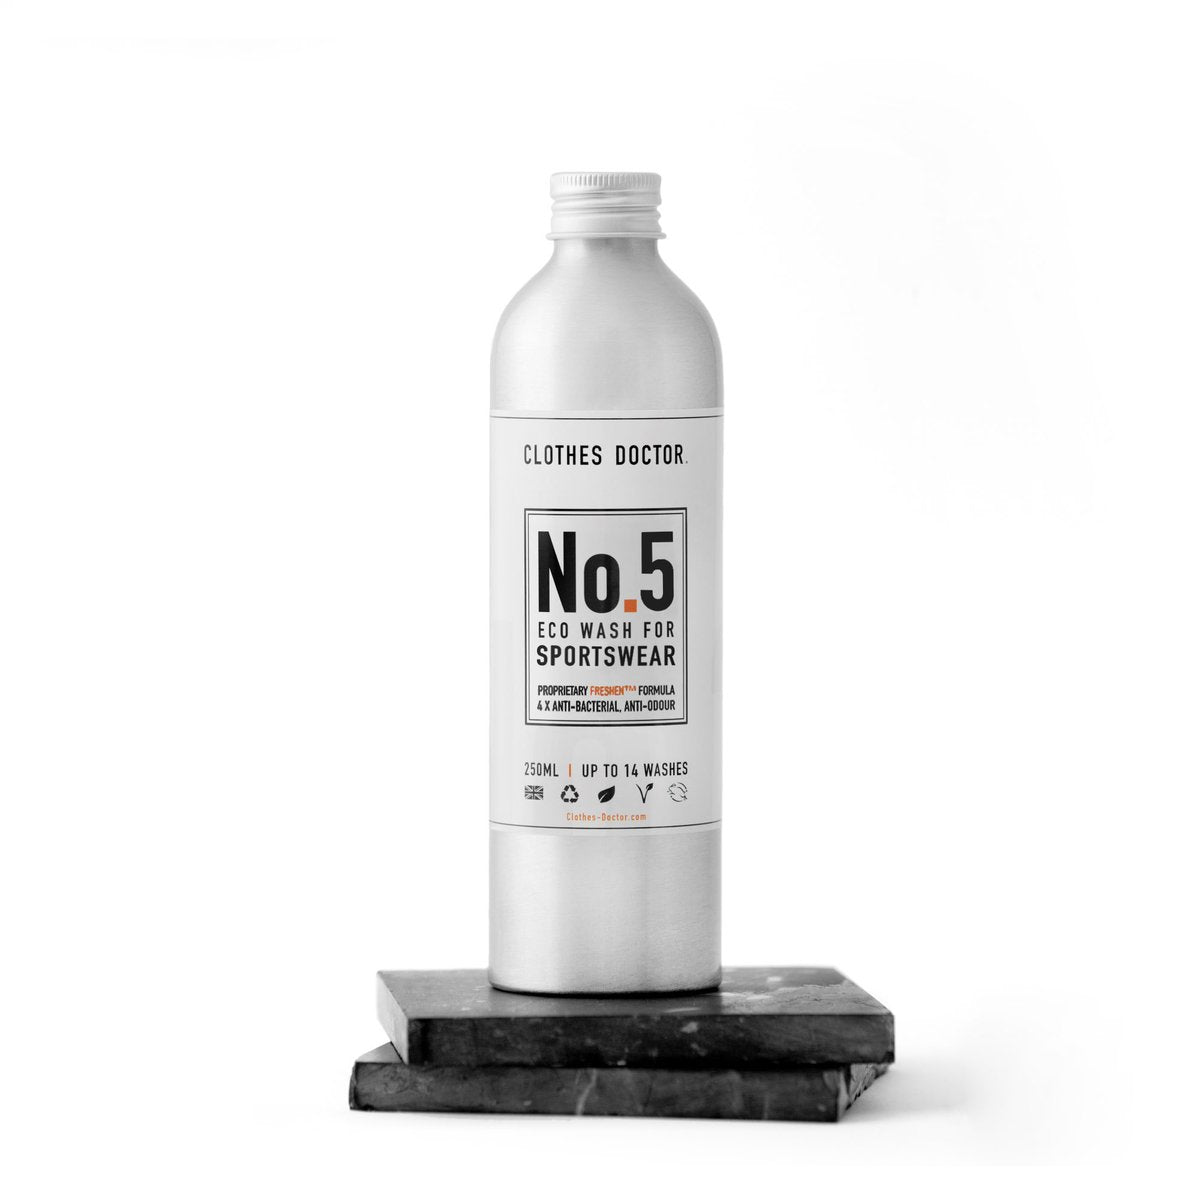 COMPLETE CLOTHING CARE KIT Clean (in 250ml), nourish, and revive your clothes with plant derived ingredients and blissful fragrances that are packed inside plastic-free bottles. - natoorio